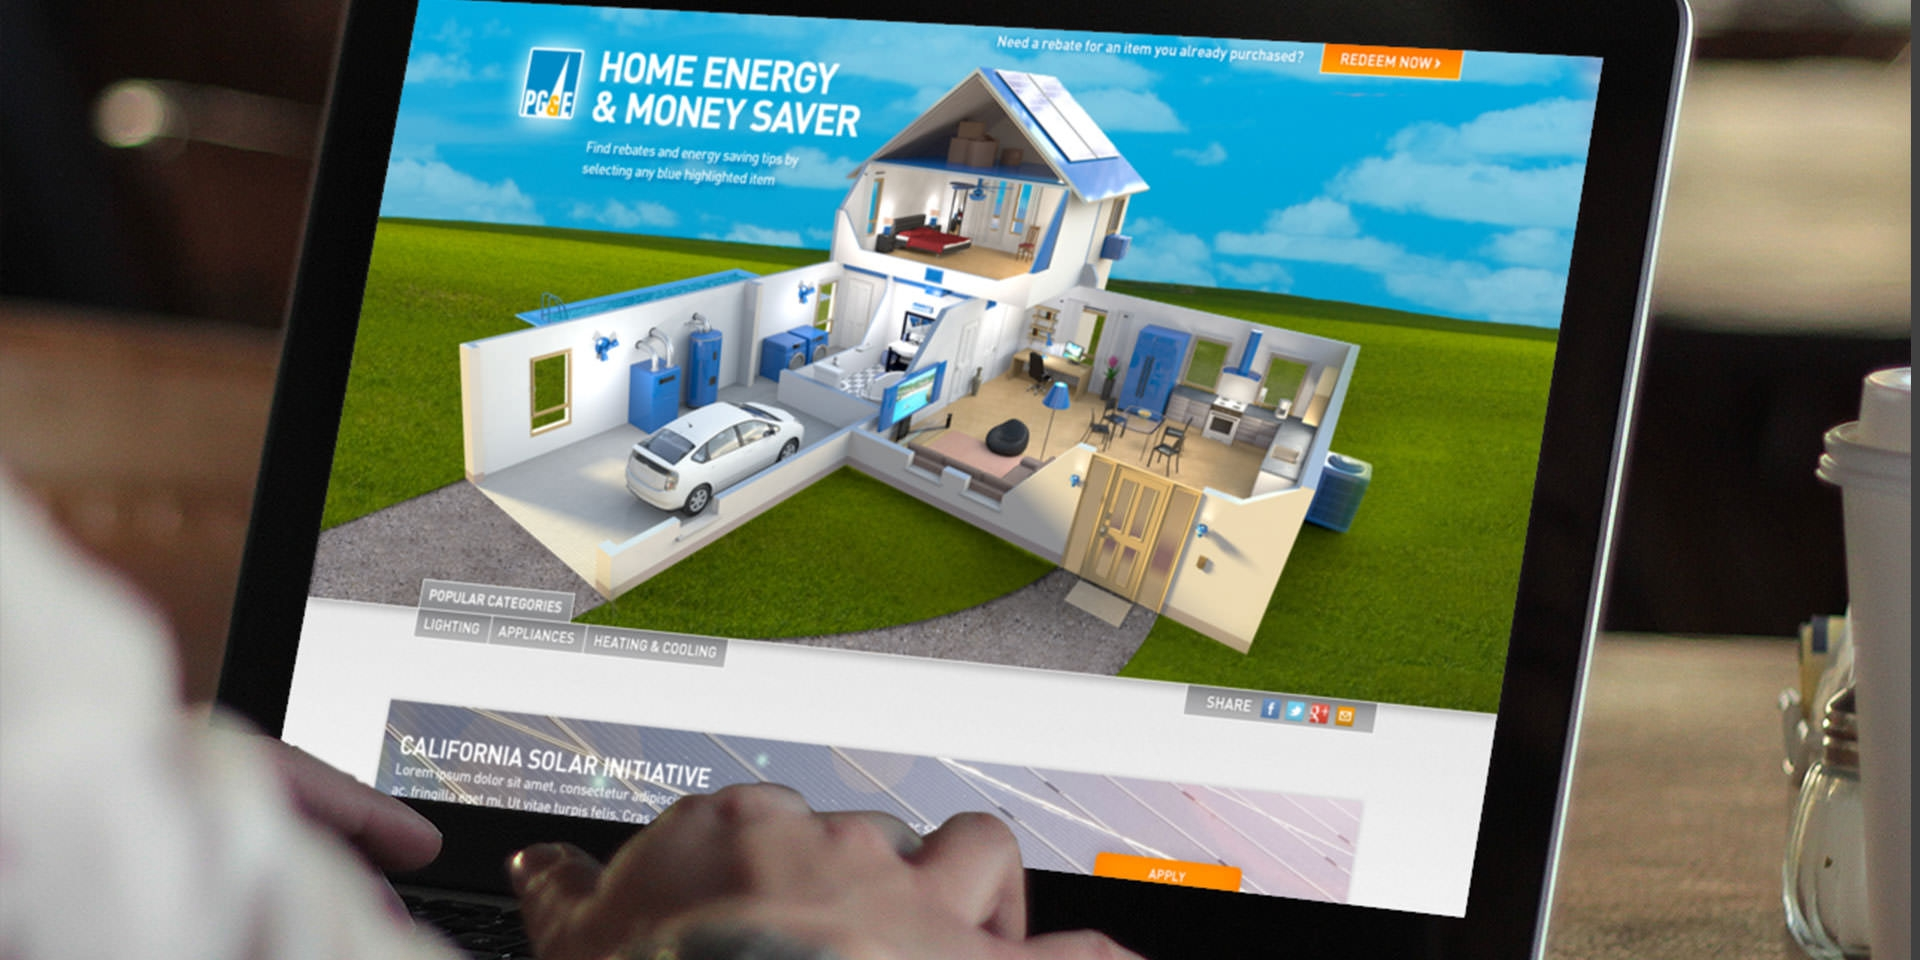 PG&E Home Money Saver